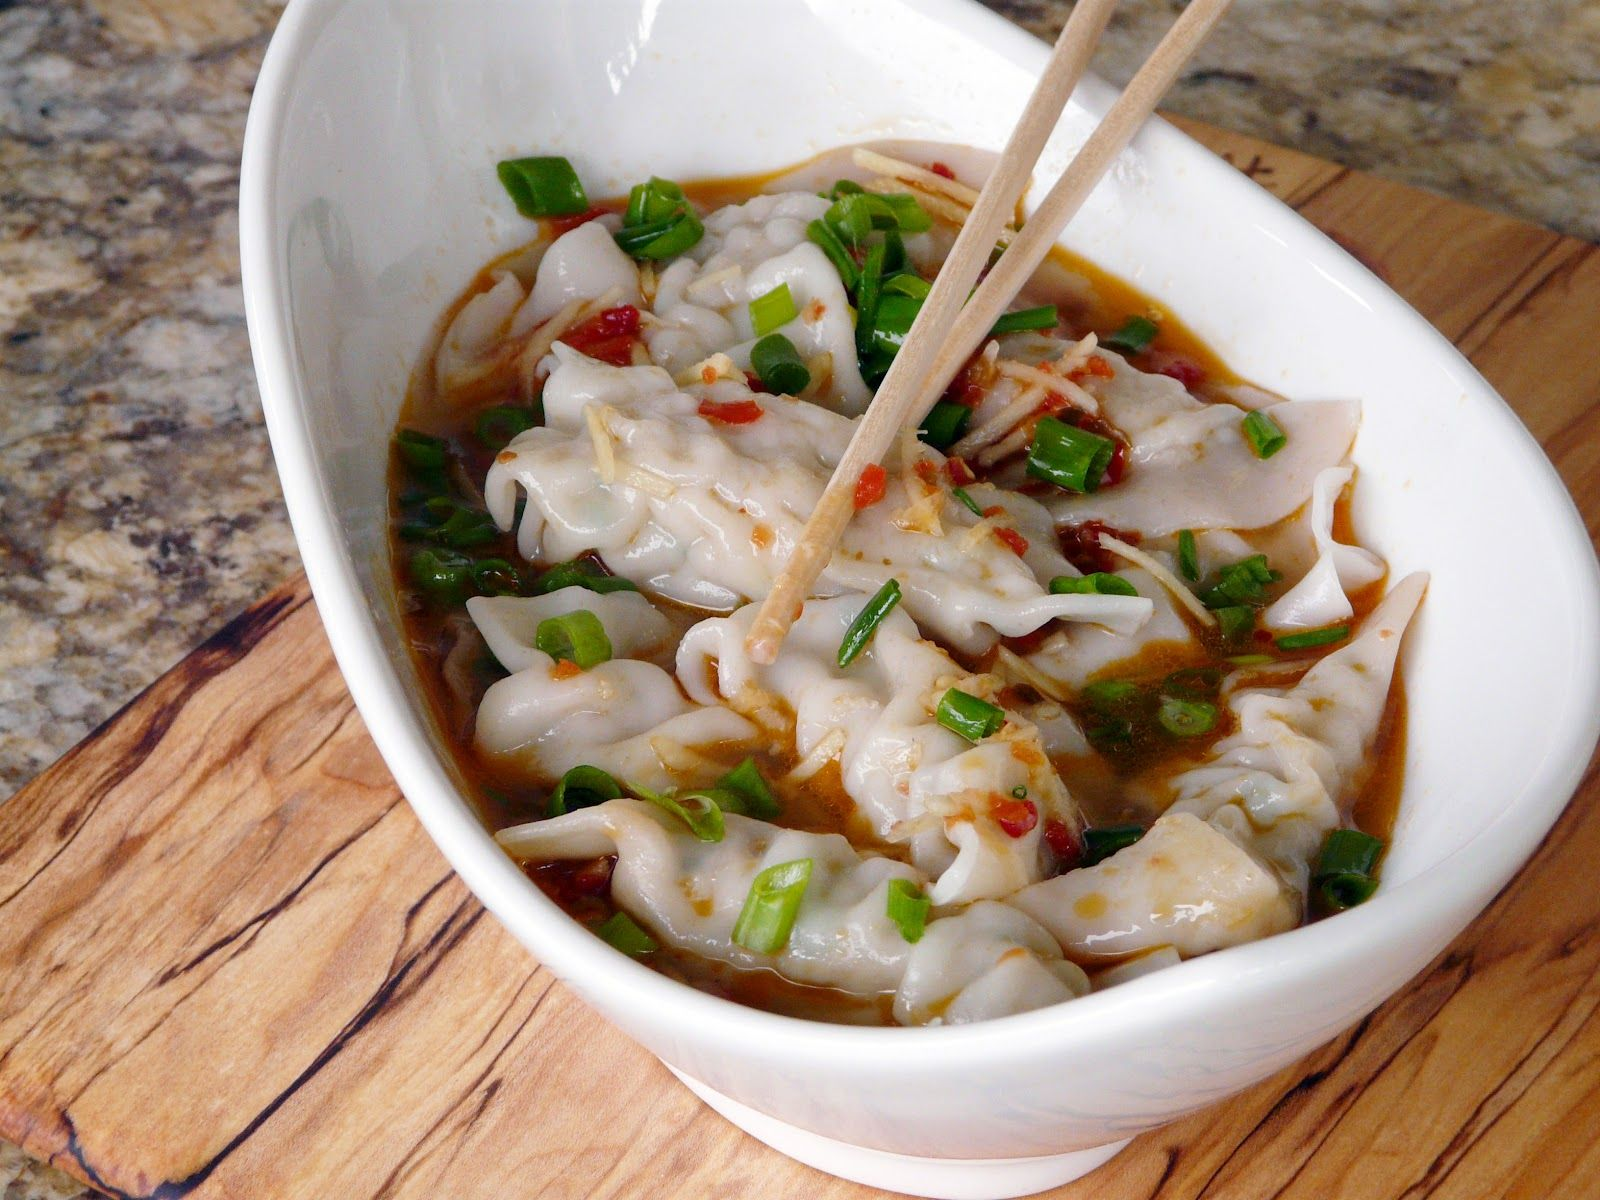 Wontons in Chili Broth - can't wait to make a big batch then freeze them to have anytime | prepared freezer meals quick and easy lunch or dinner